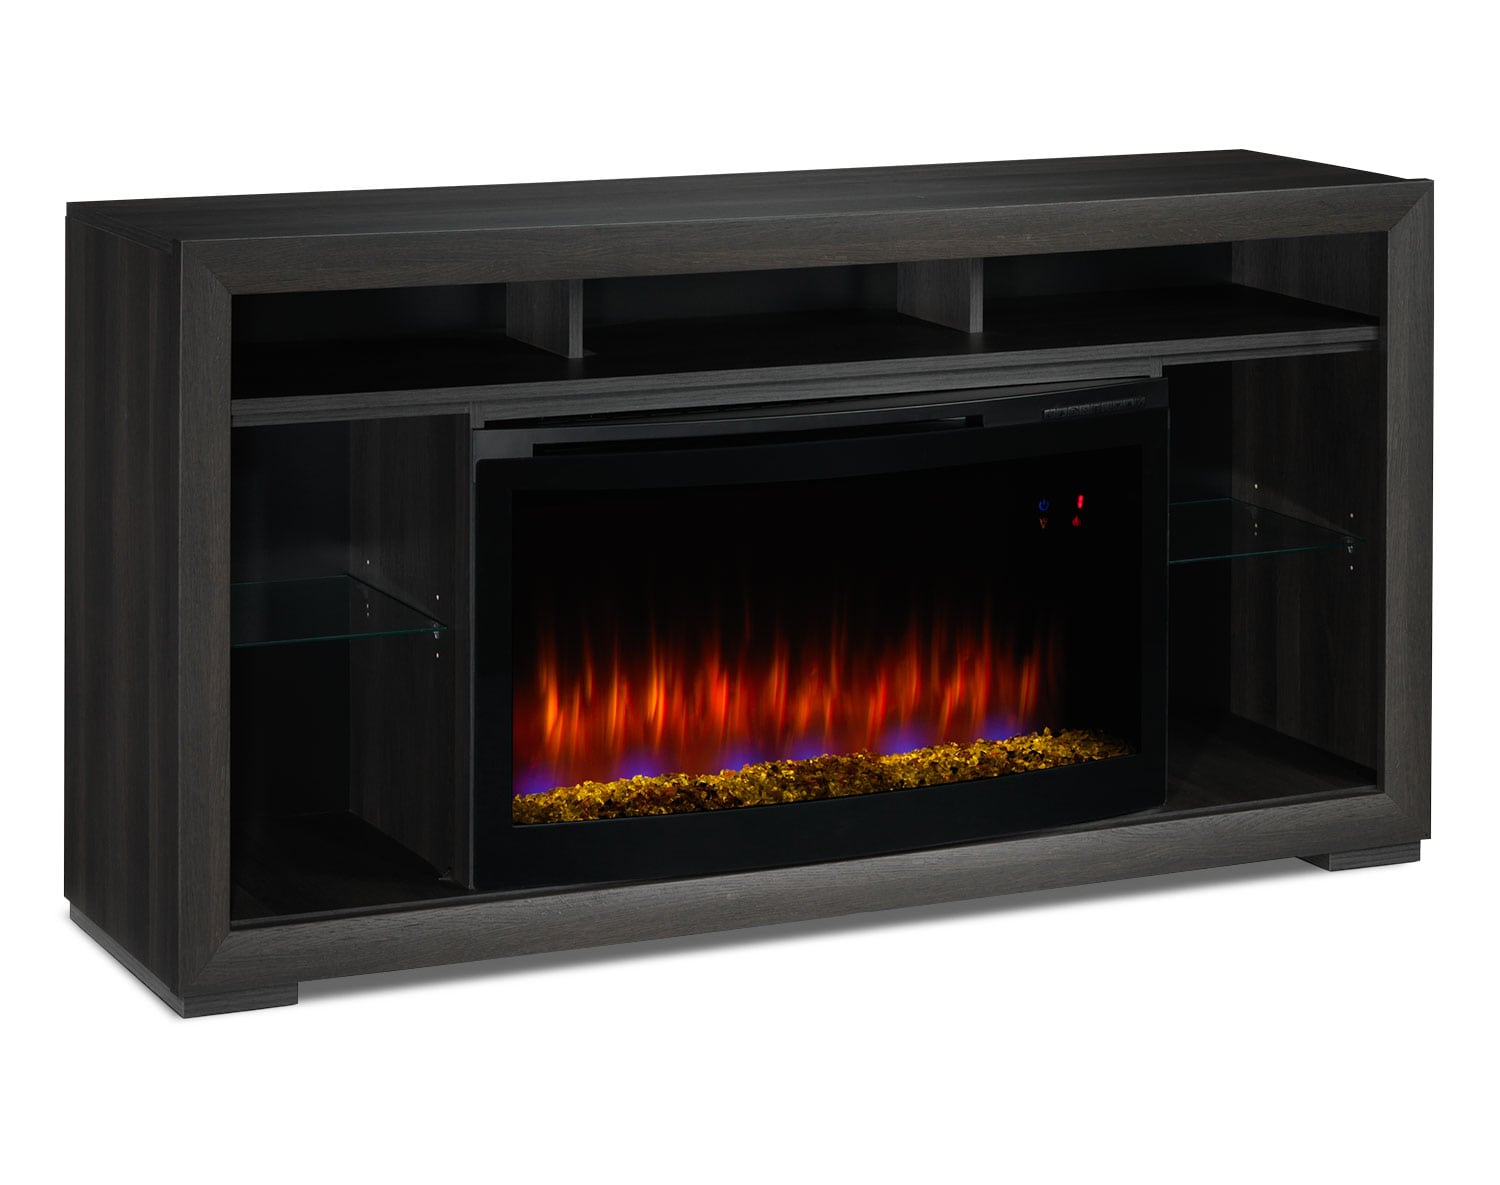 [Manor Fireplace Credenza with Contemporary Insert]